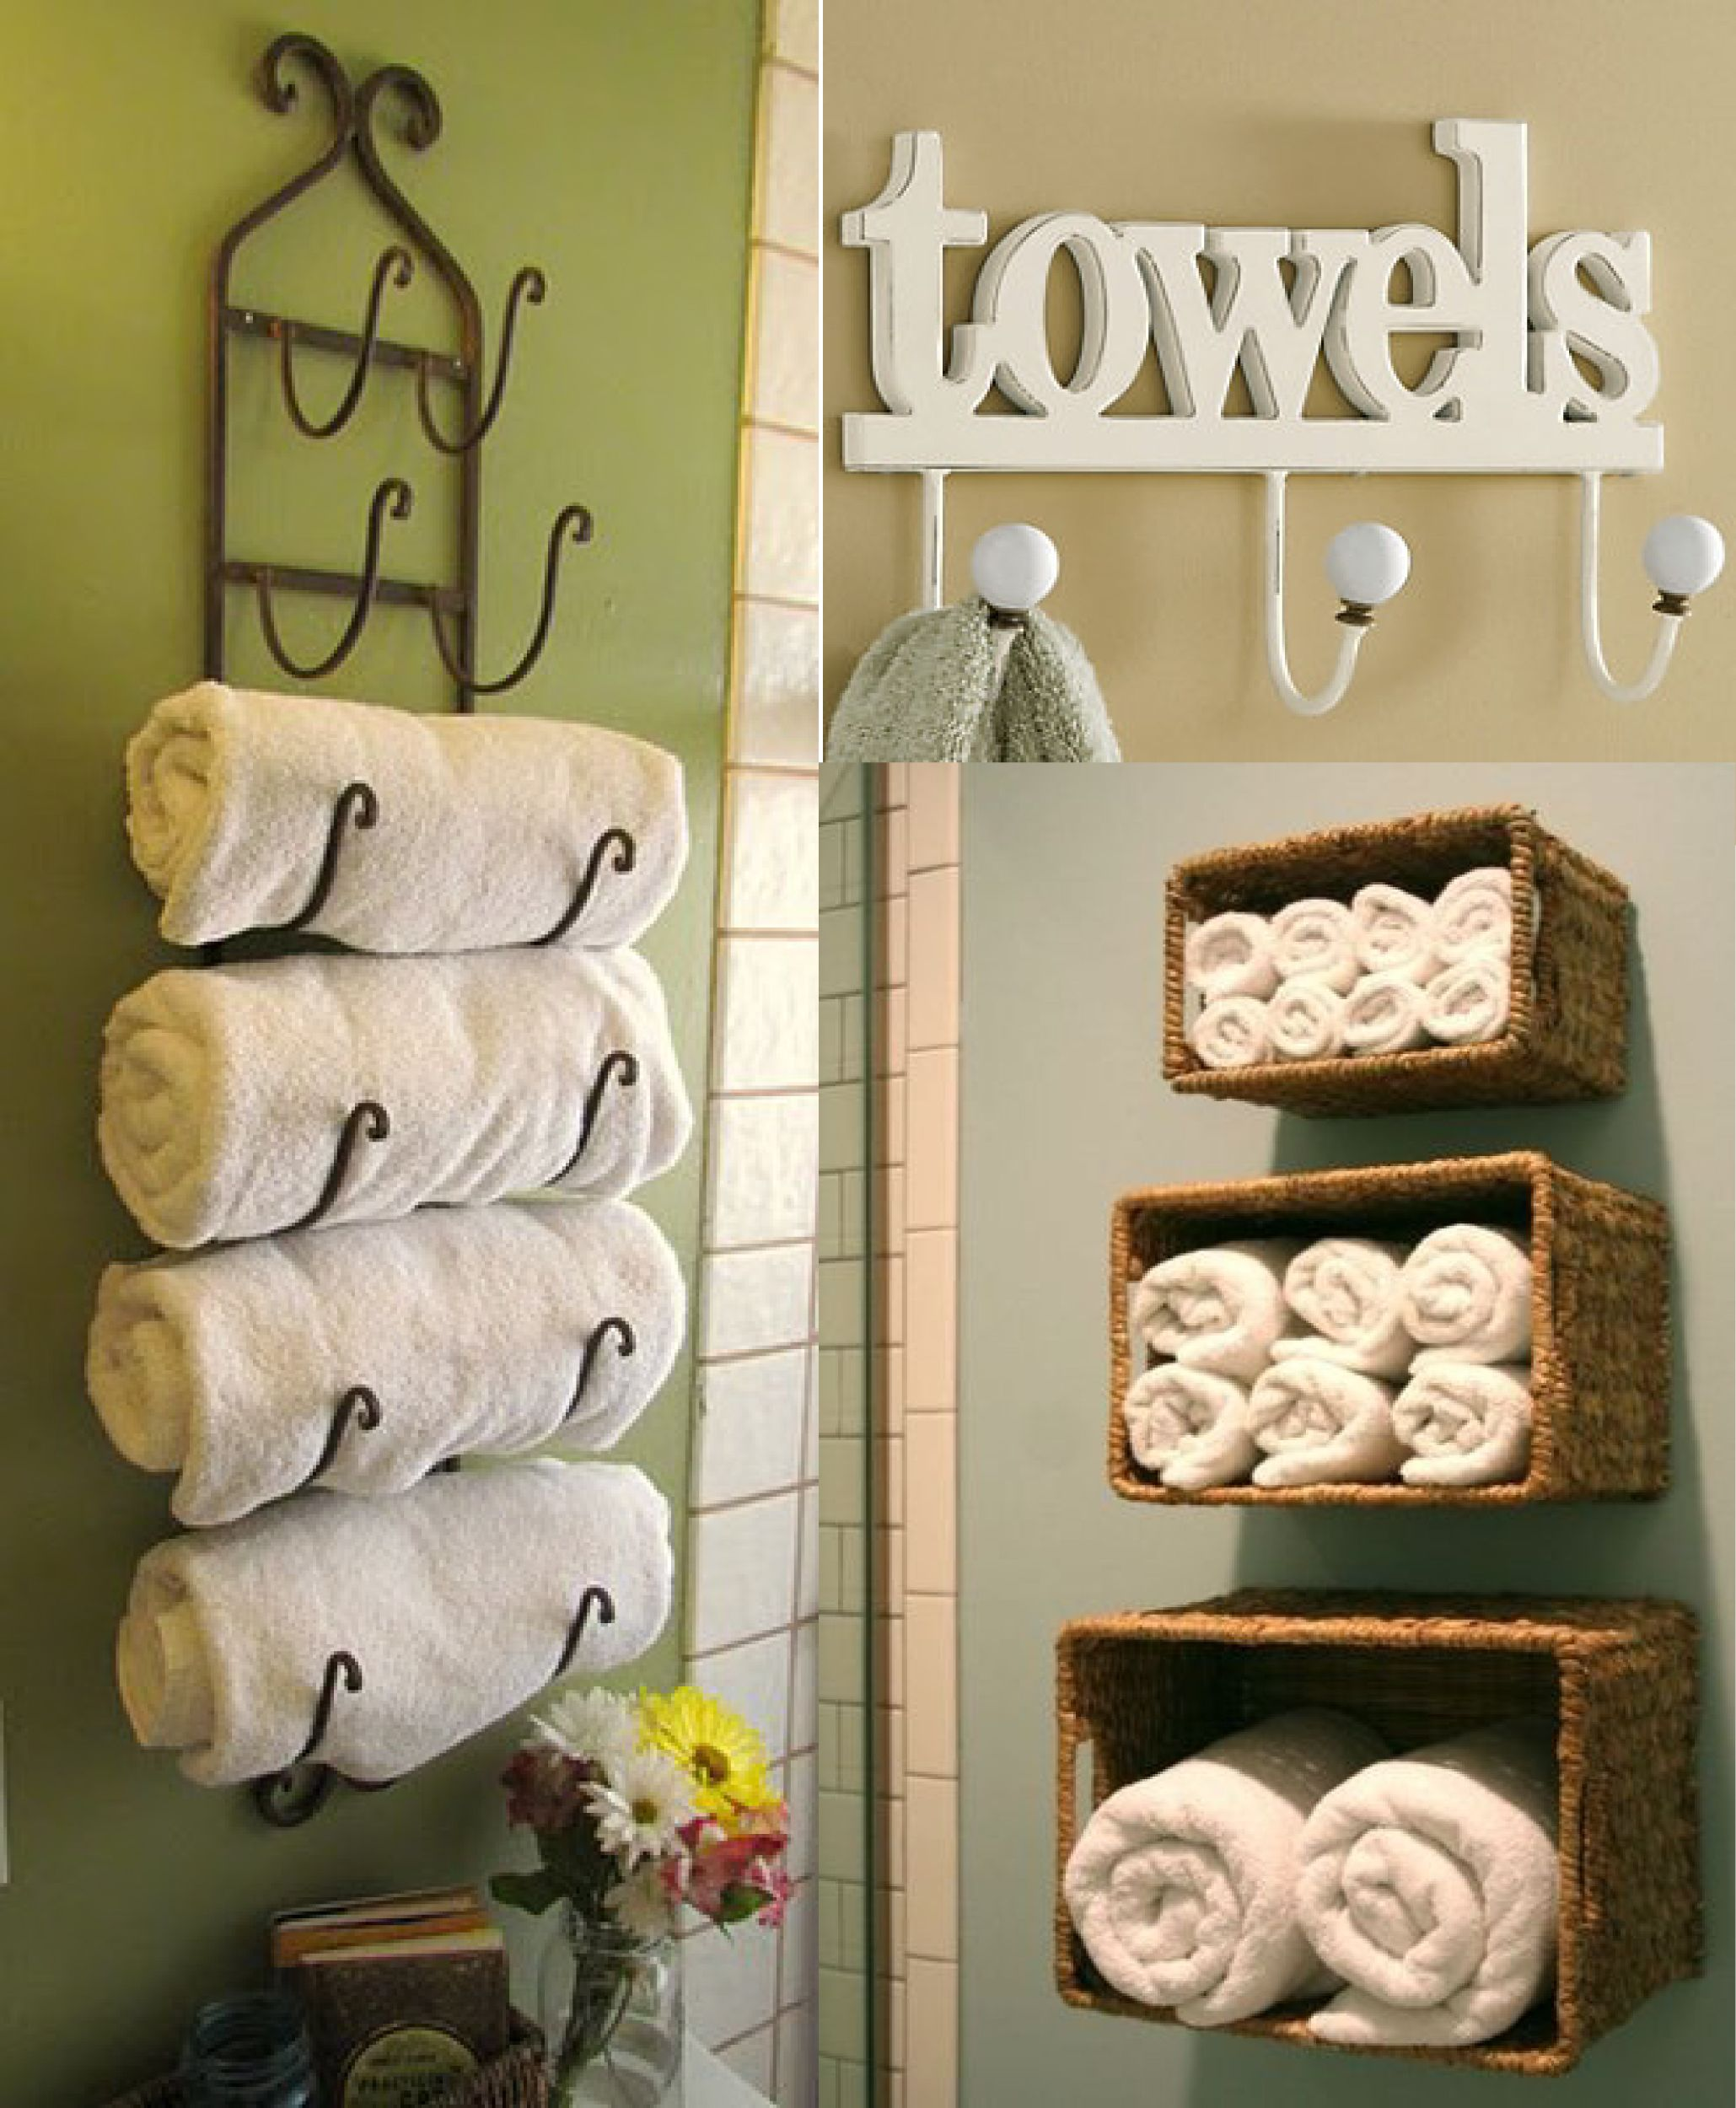 Ordinary Towel Storage Ideas Small Bathroom Part - 14: Bathroom Interior Awesome Three Rattan Wall Basket Towel Storage And  Antique Custom Towel Bar Inspiring Bathroom Accesories Design Ideas Fancy Towel  Storage ...